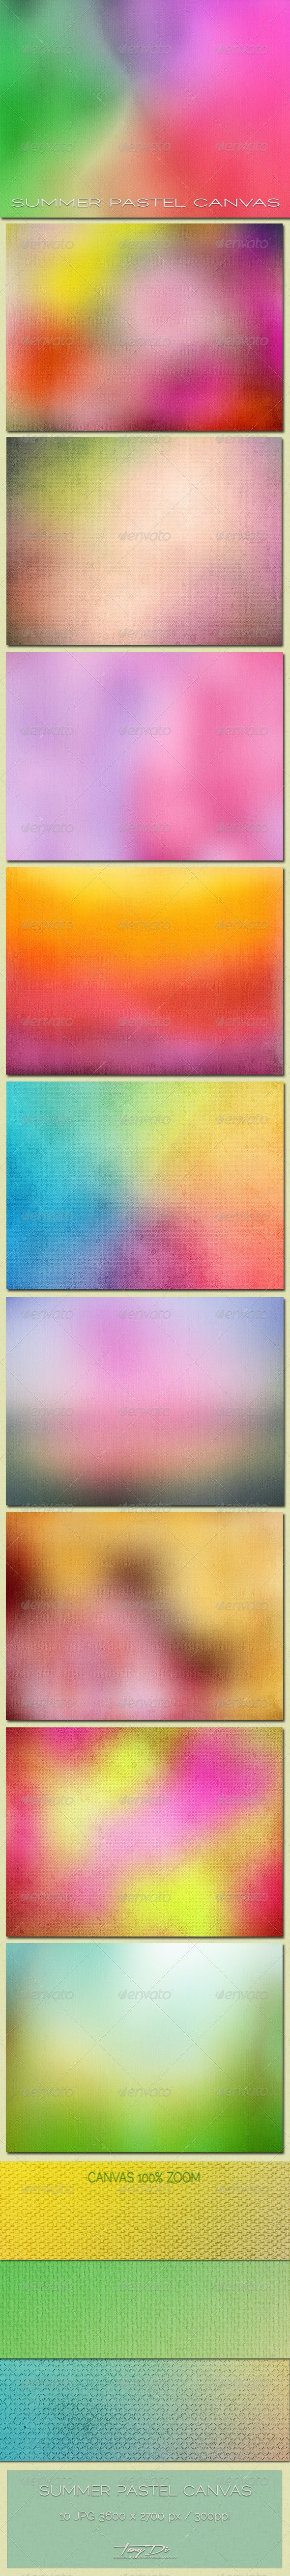 Summer Pastel Canvas - Abstract Textures